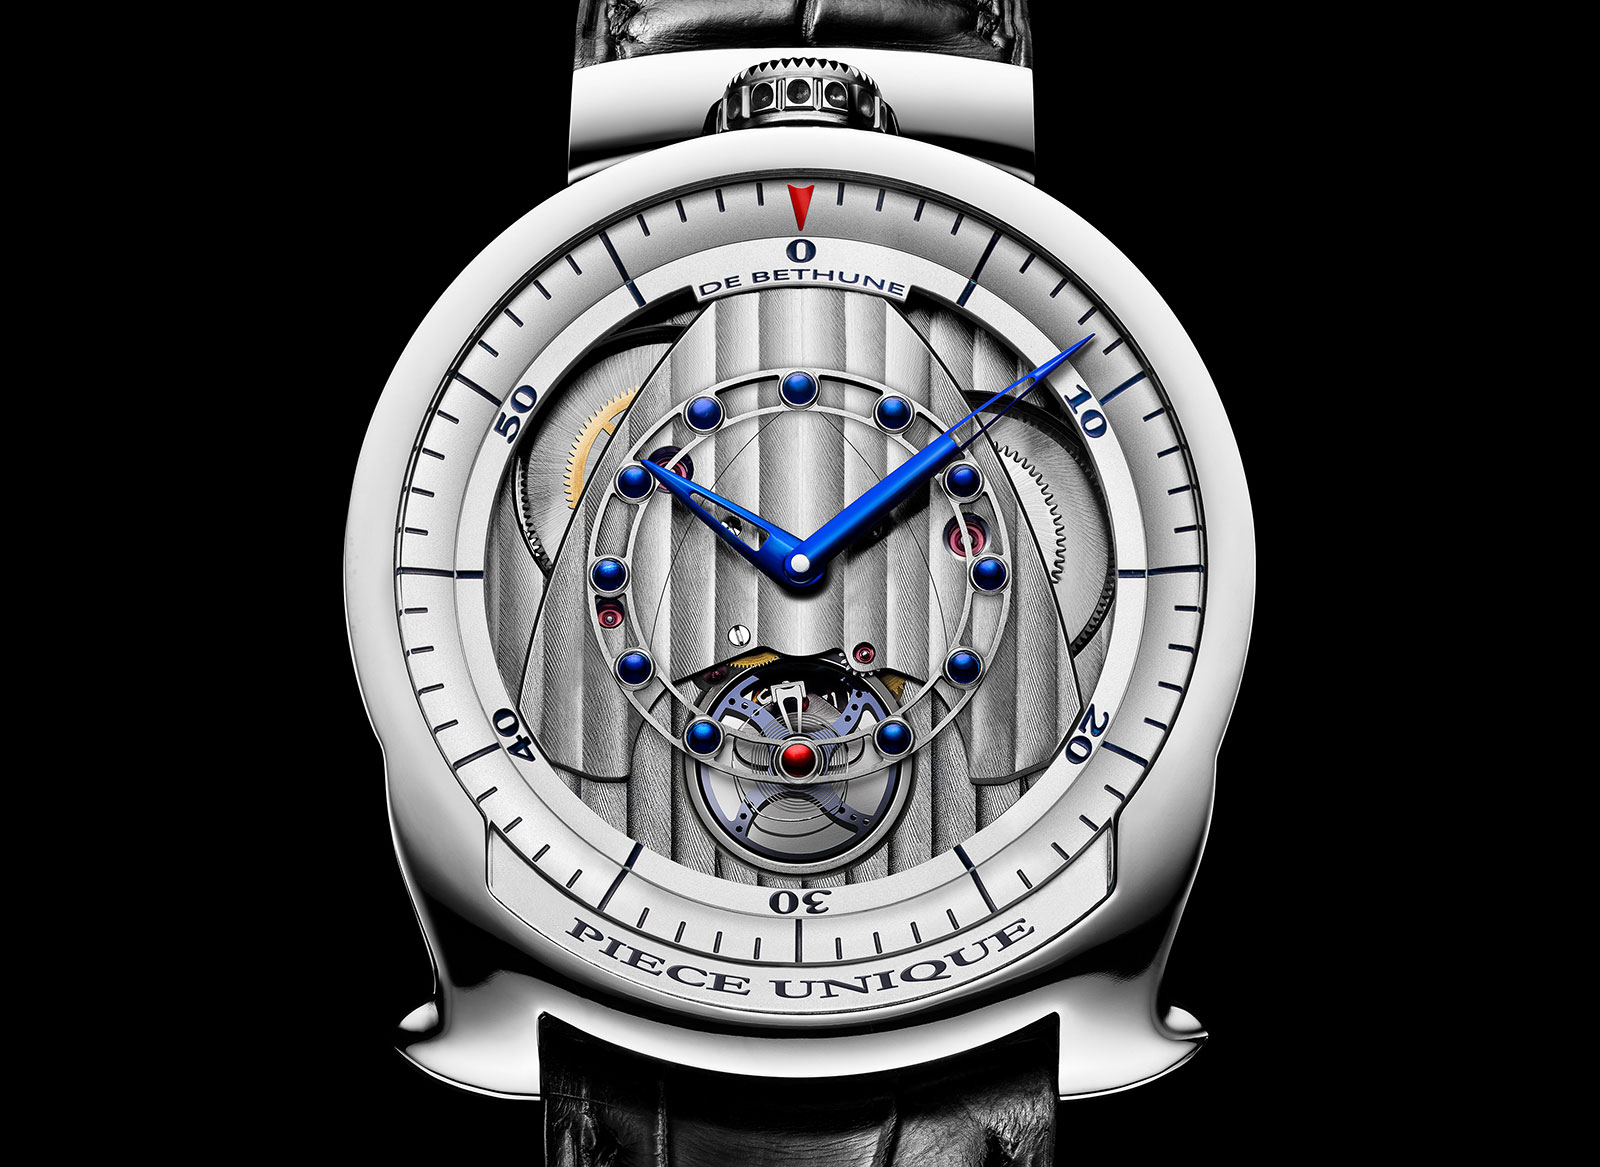 De-Bethune-DBS-2005-2015-Only-Watch-2015-thumb-1600x1167-26696.jpg